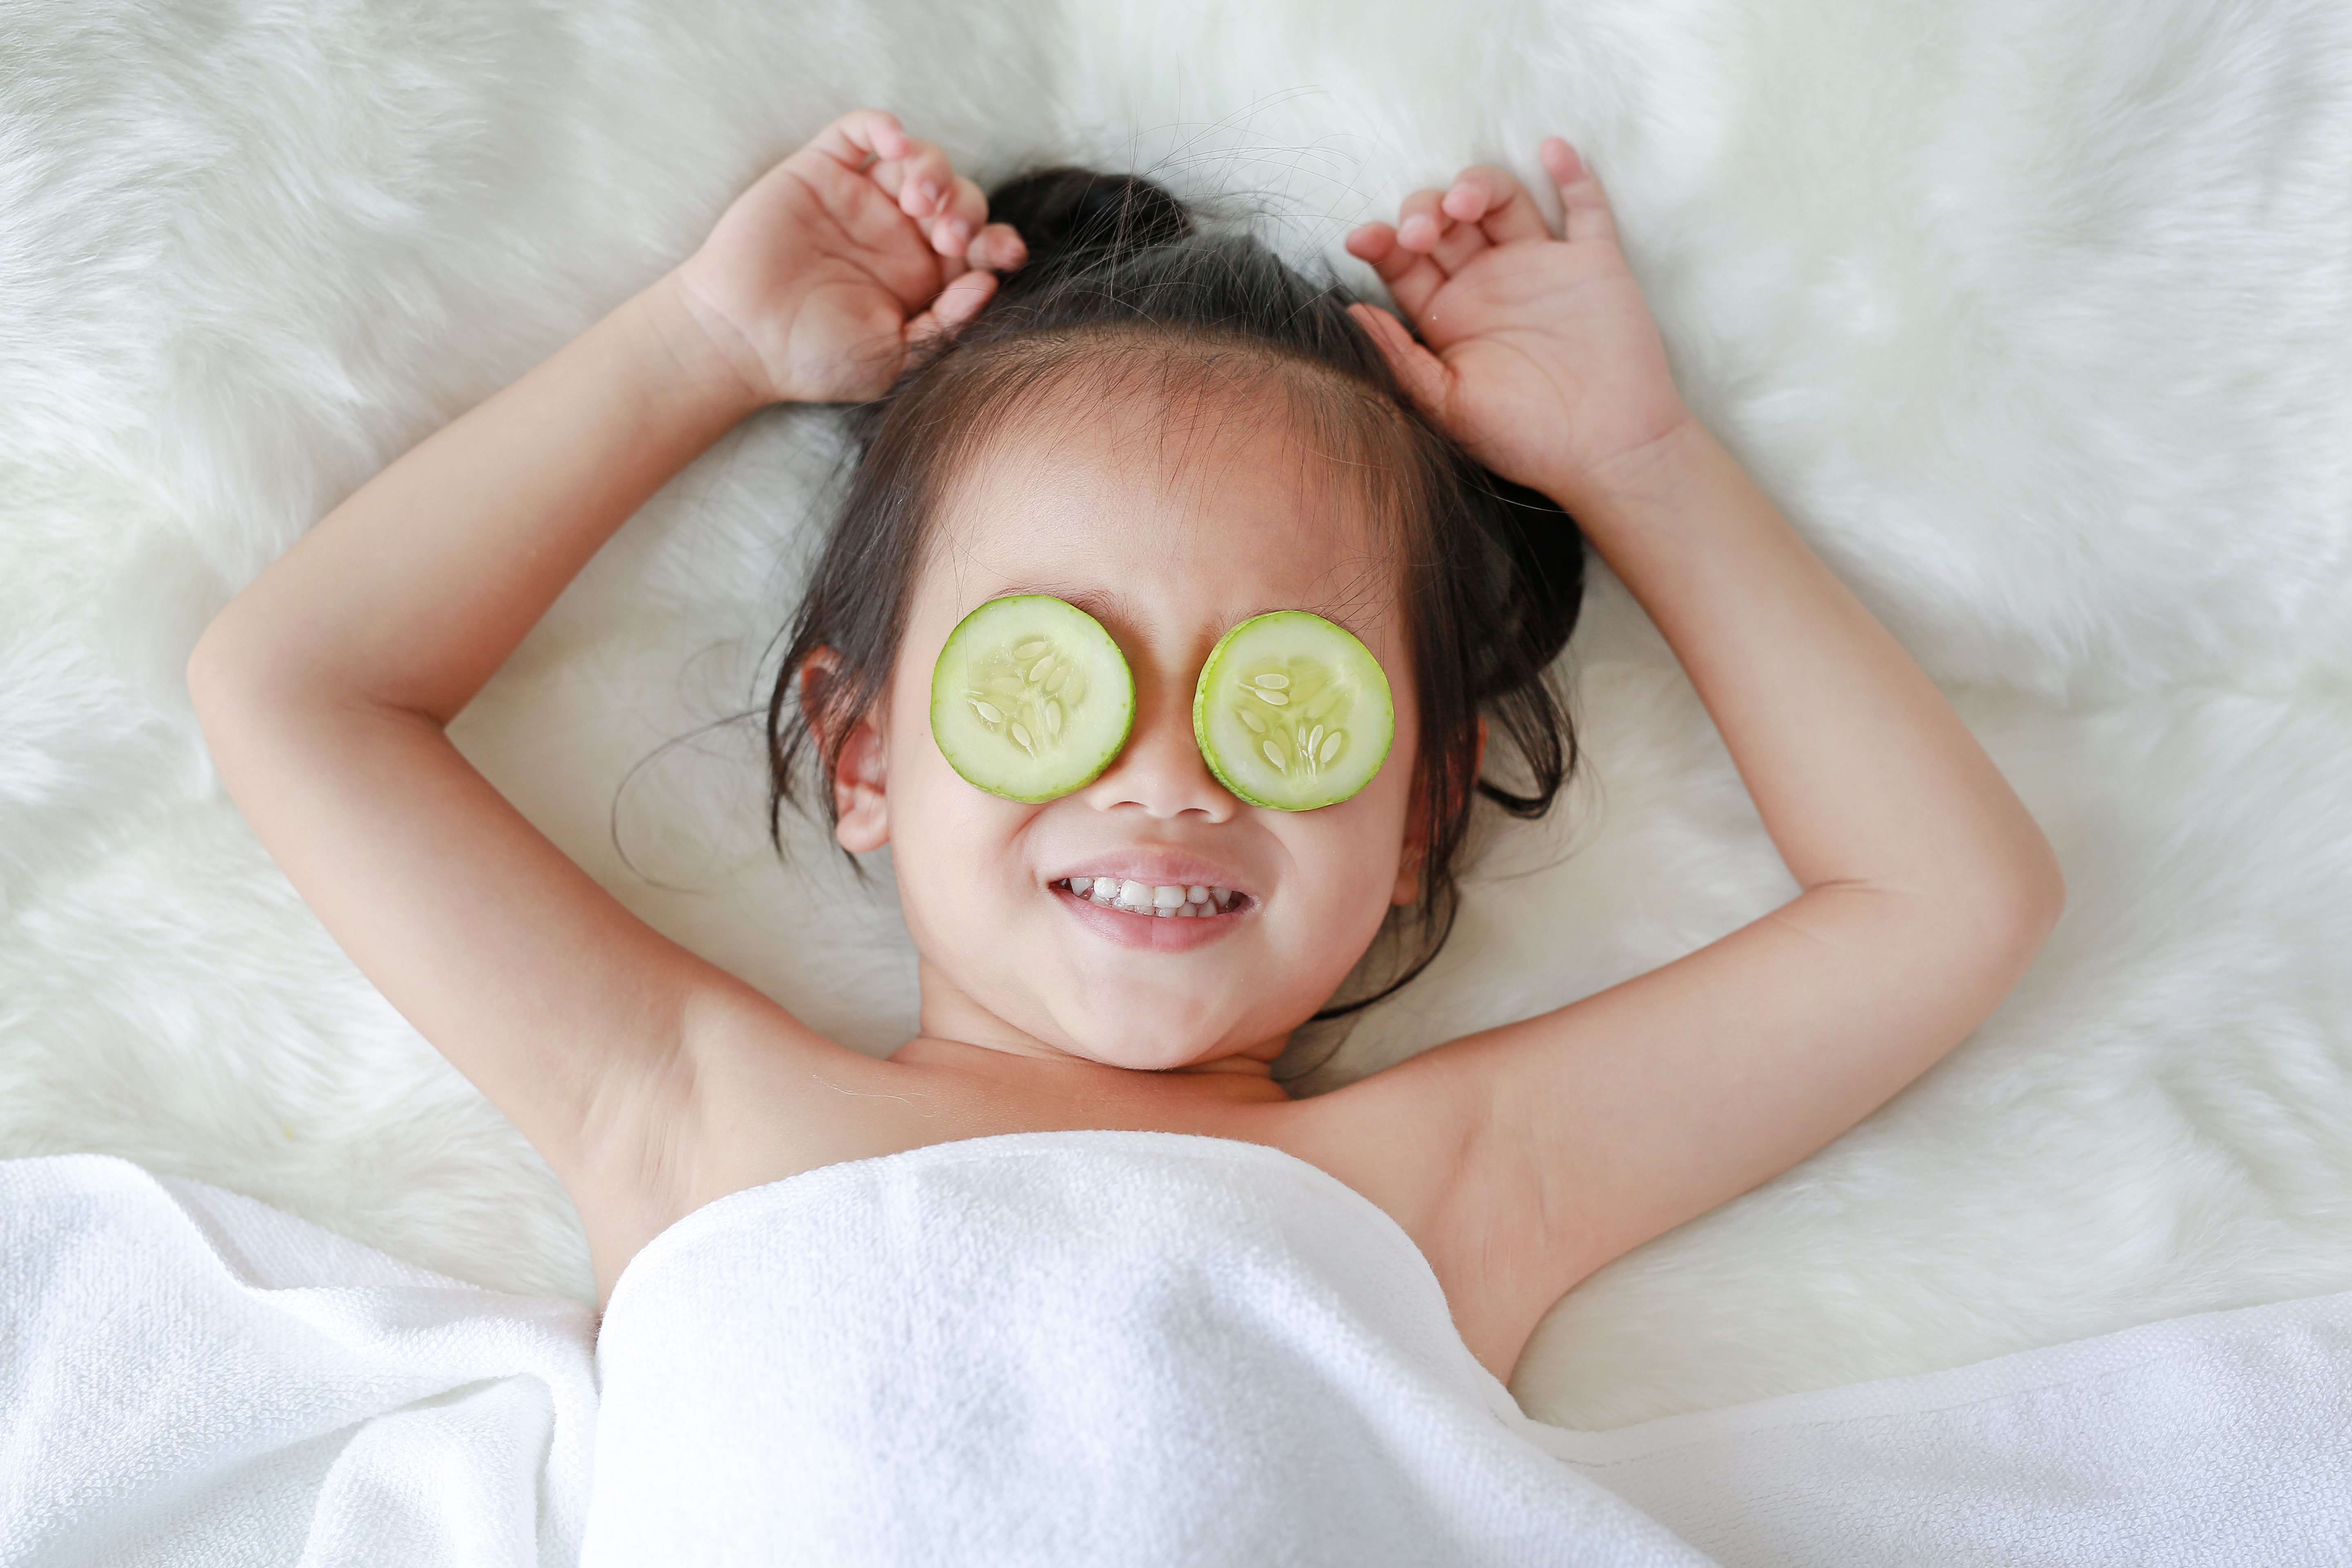 Baby with cucumber slices on eyes for rest and nourishment